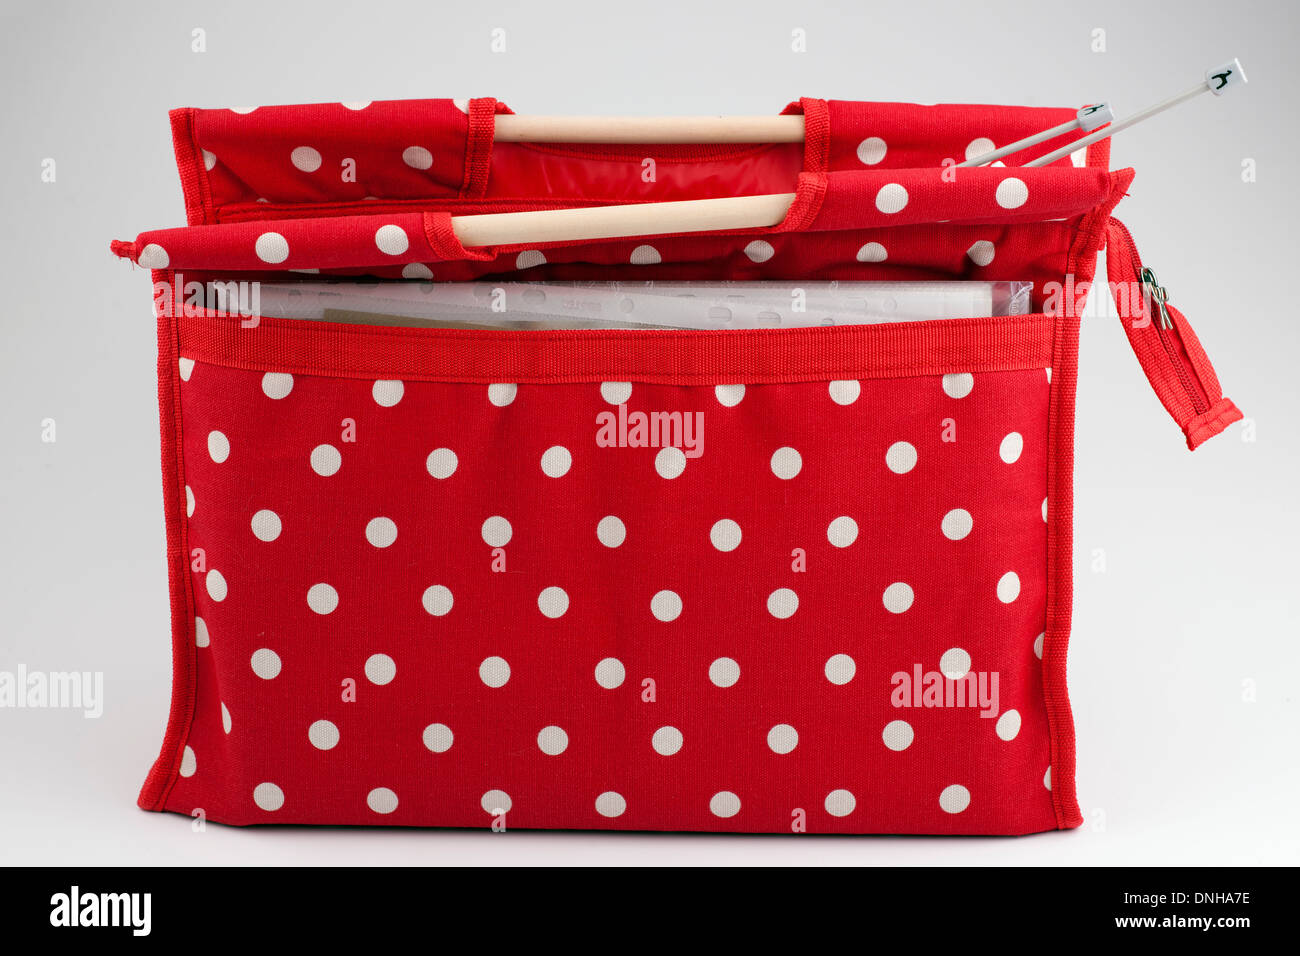 Red and white spotted zipped knitting bag - Stock Image